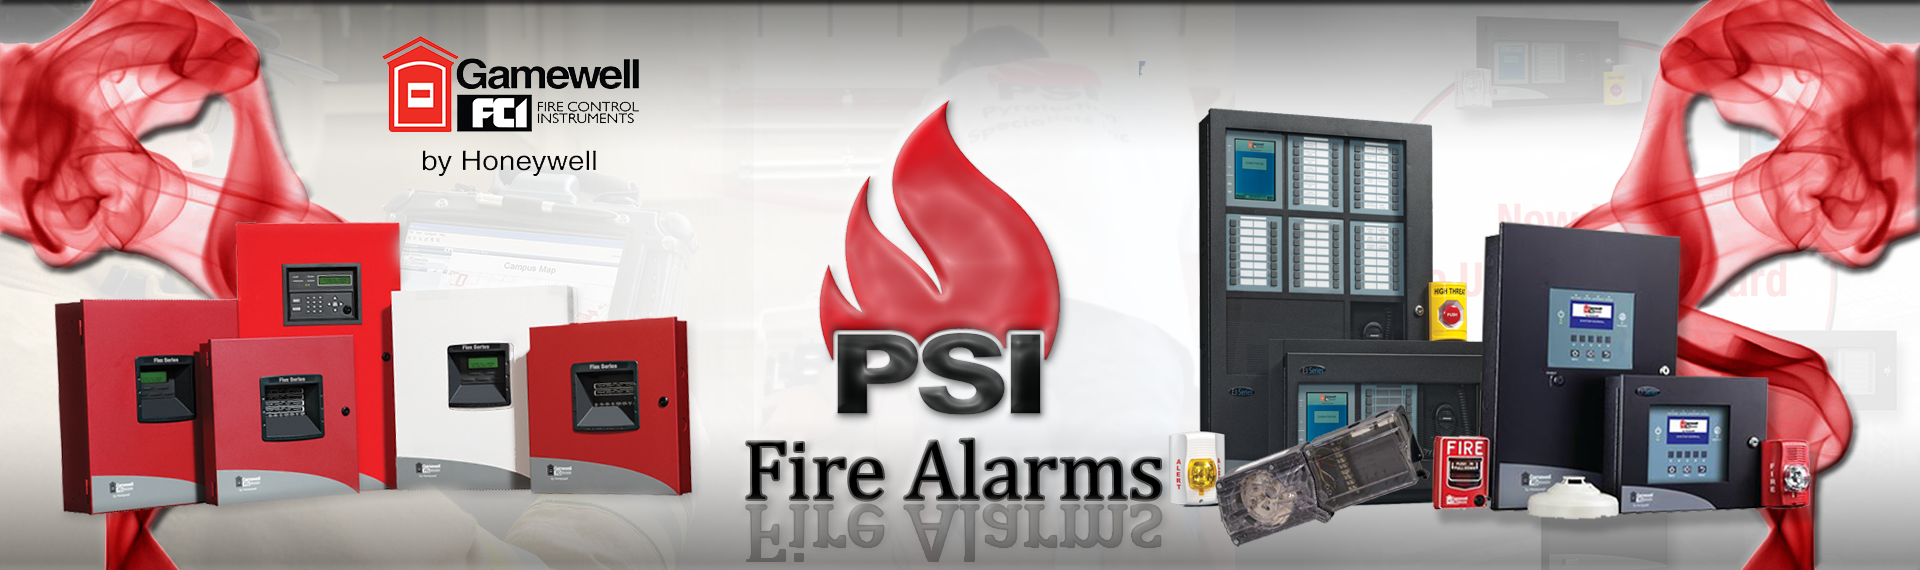 Fire Alarms - Pyrotection Specialists Inc.